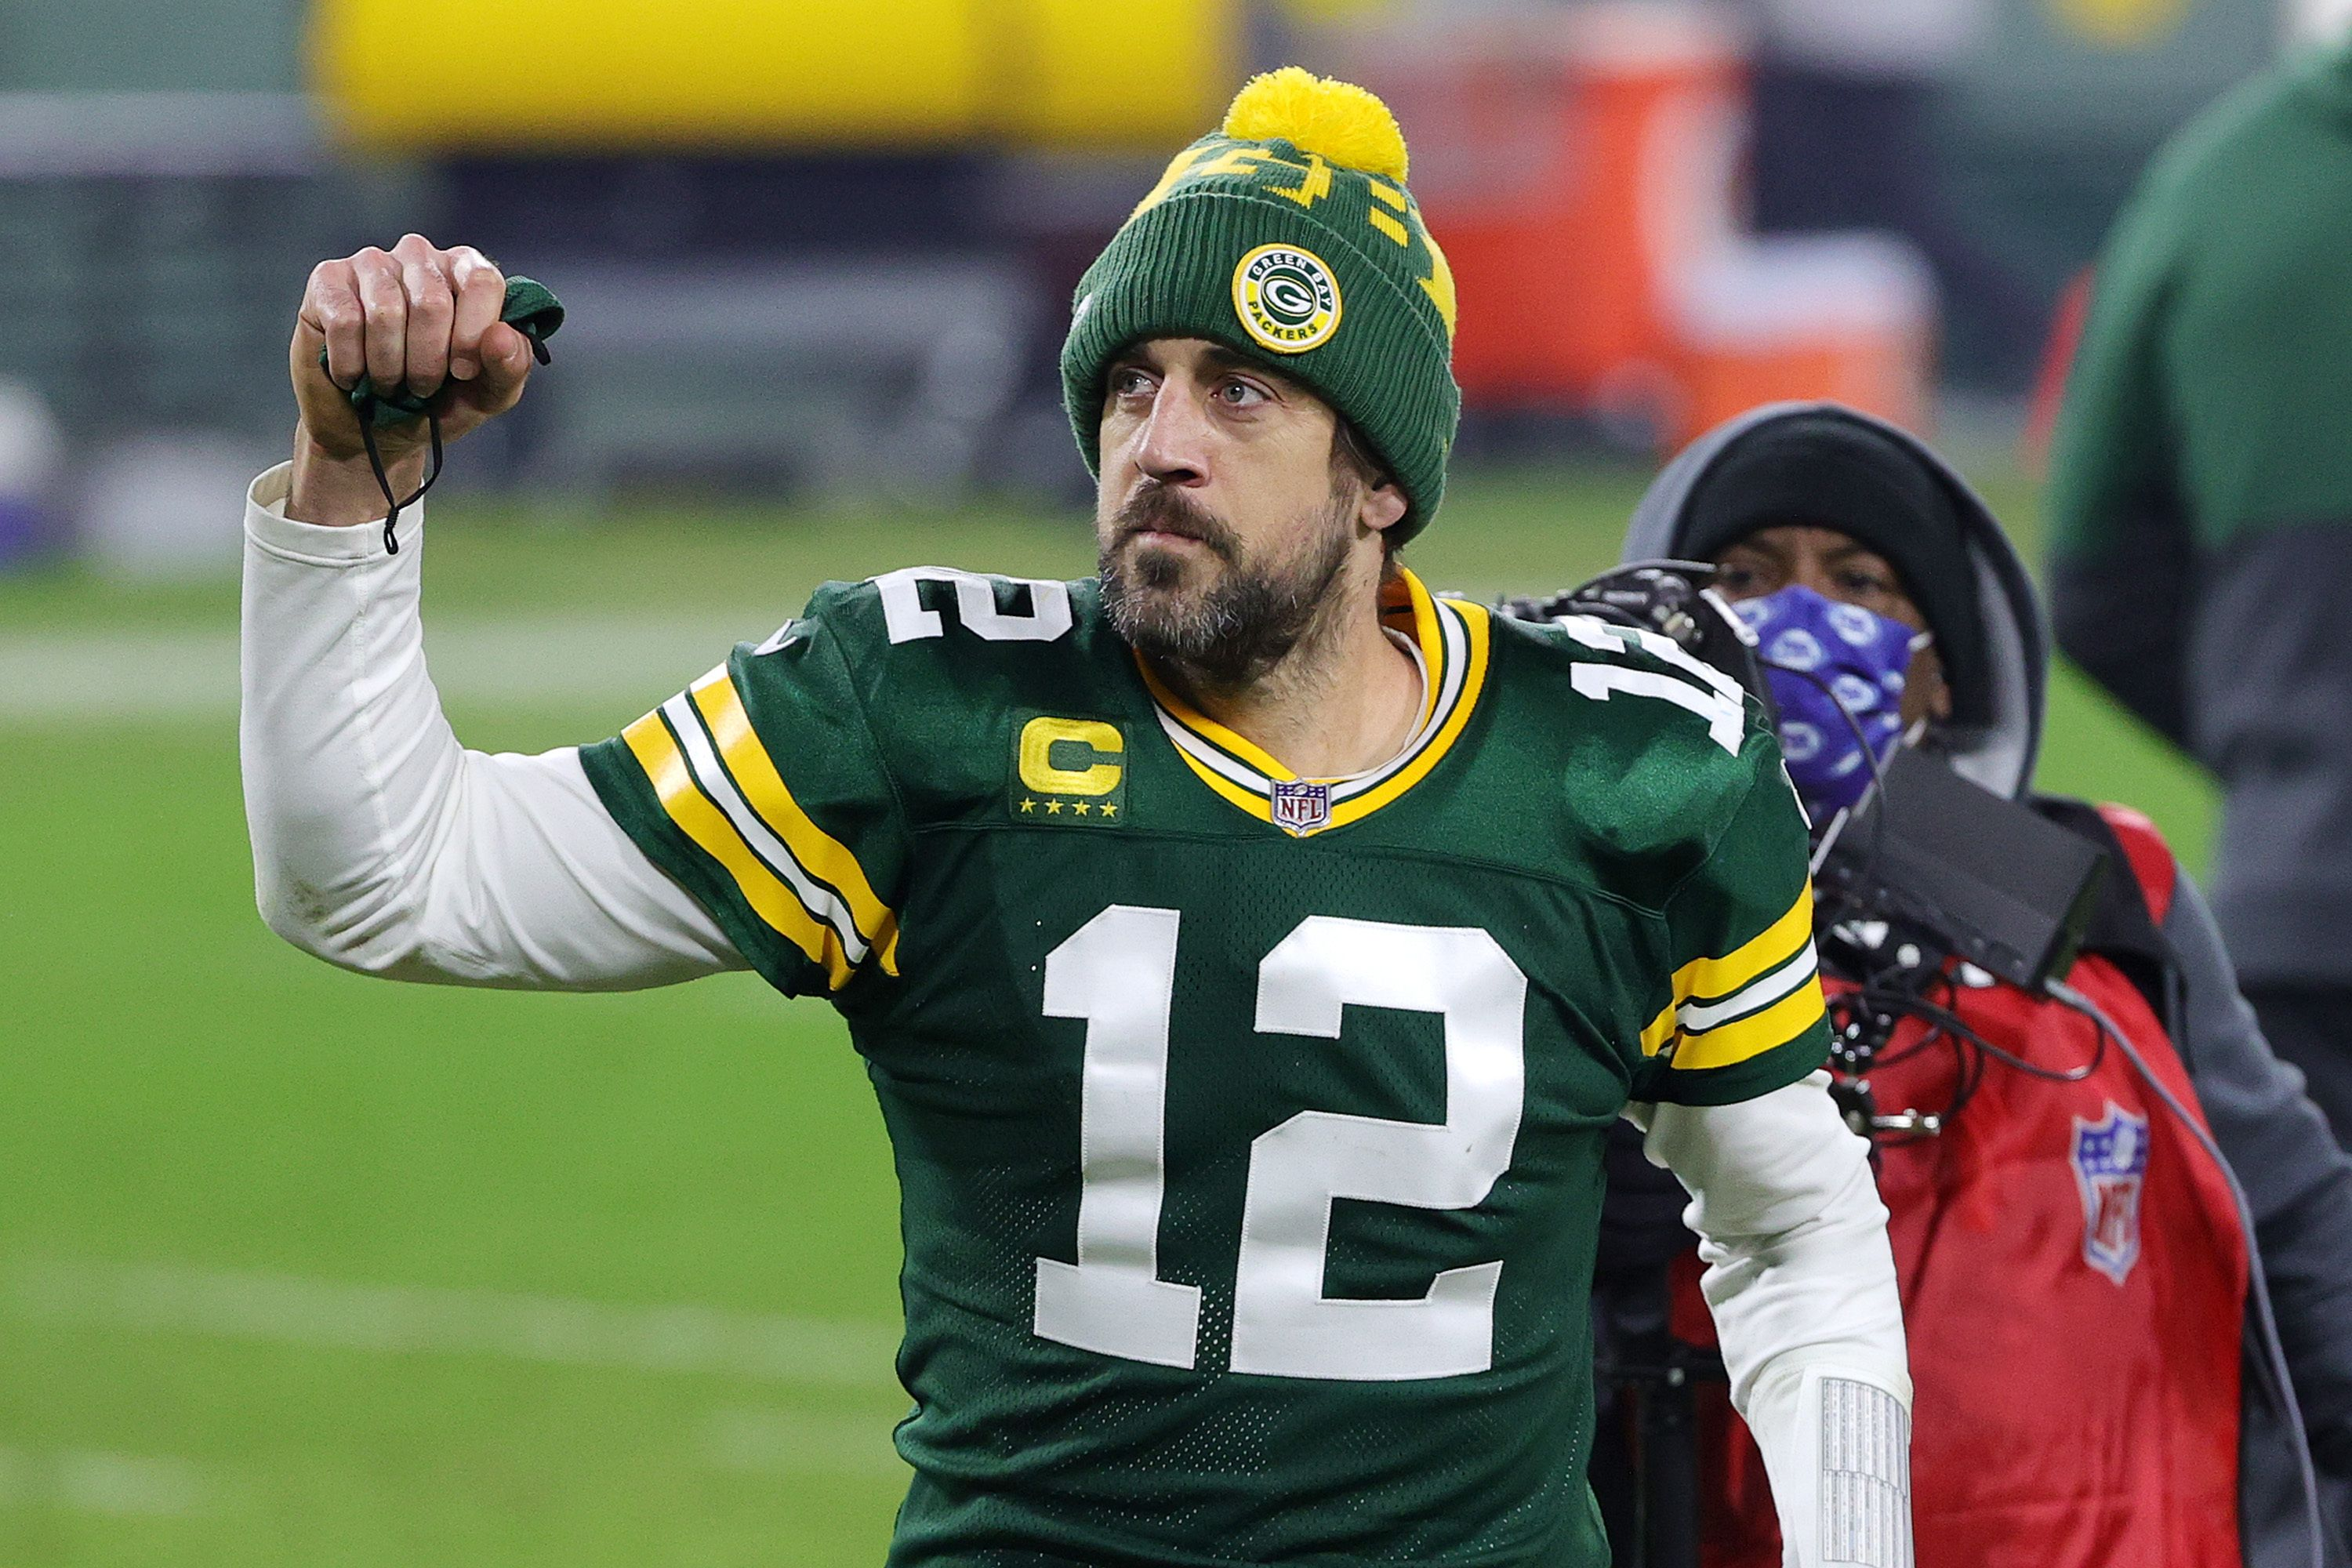 Green Bay Packers quarterback Aaron Rodgers was voted the NFL's Most Valuable Player for the 2020 season.